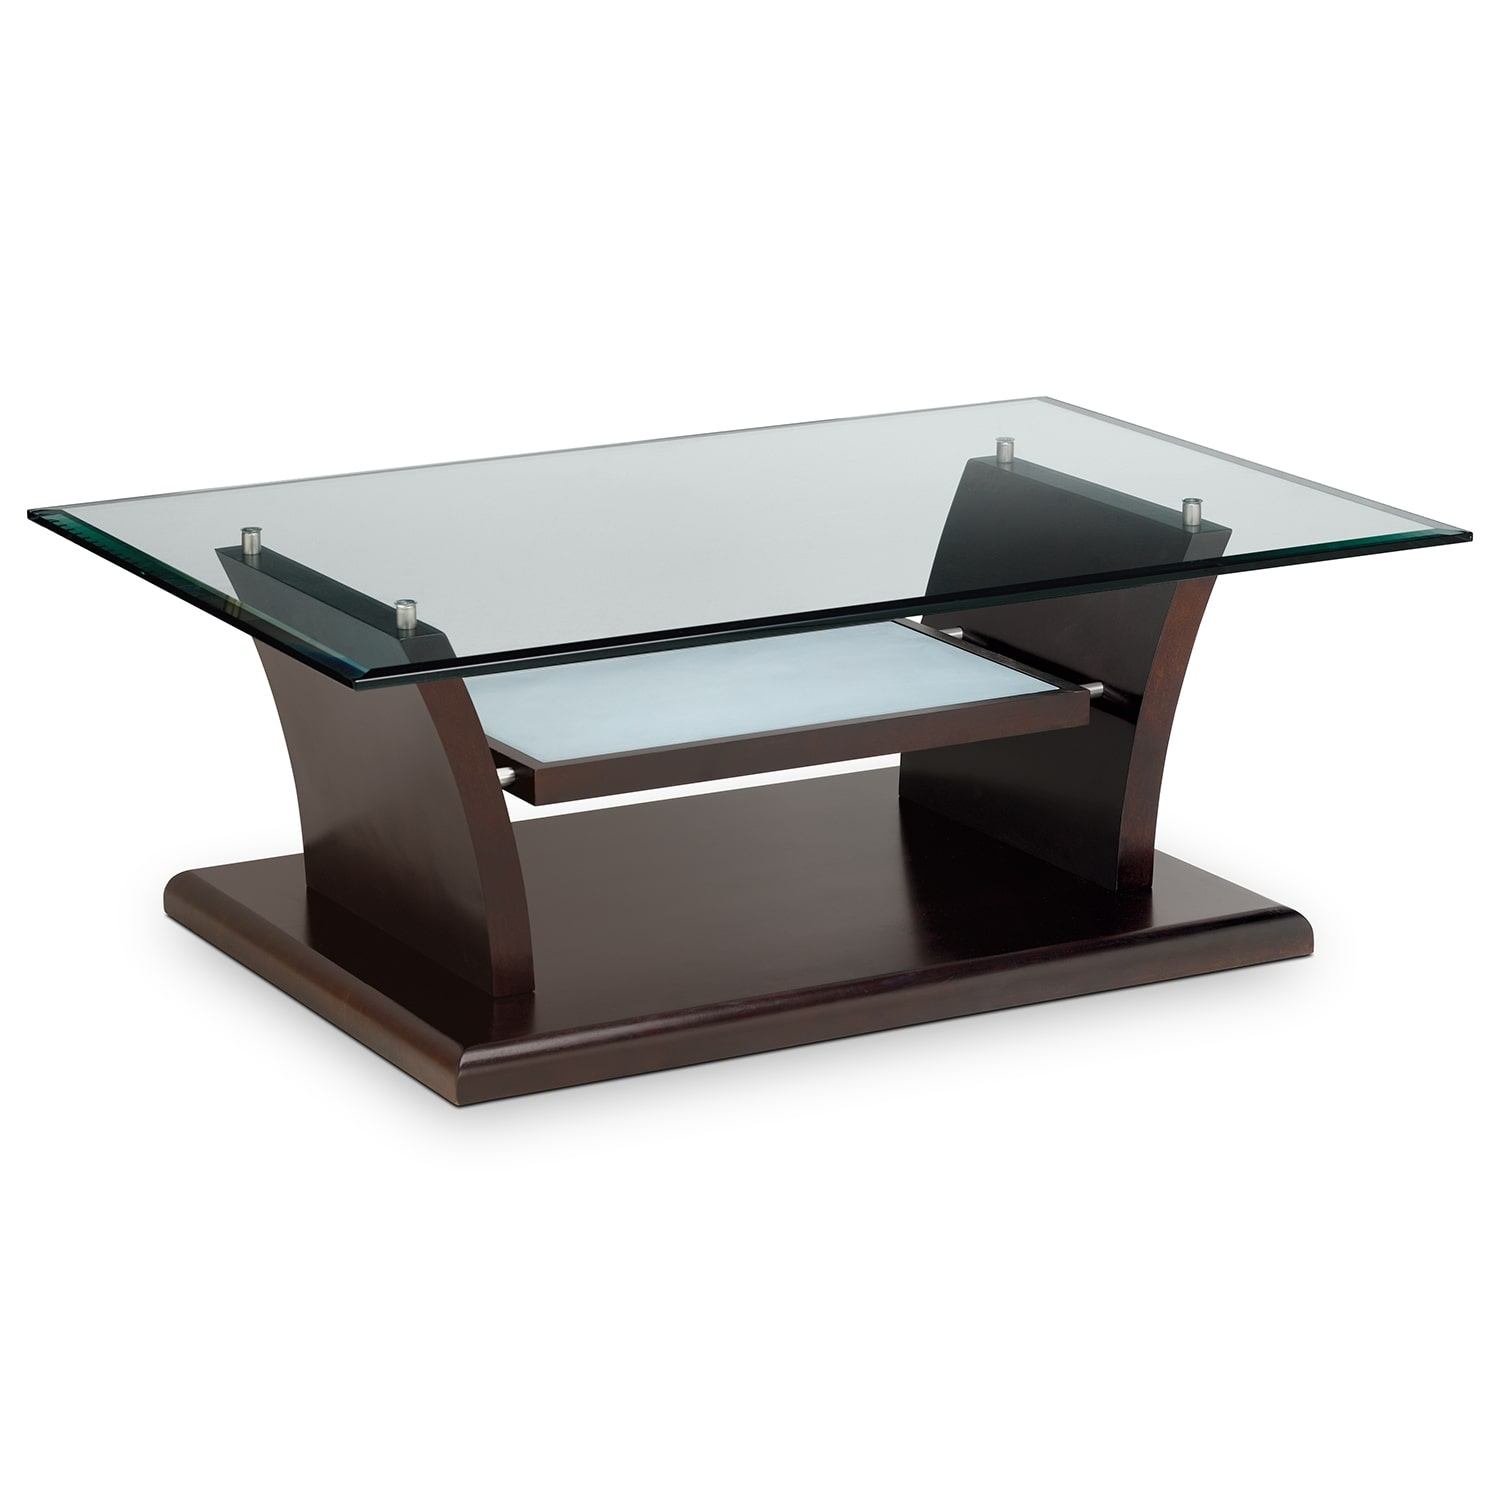 Bell aer cocktail table merlot american signature for Living coffee table